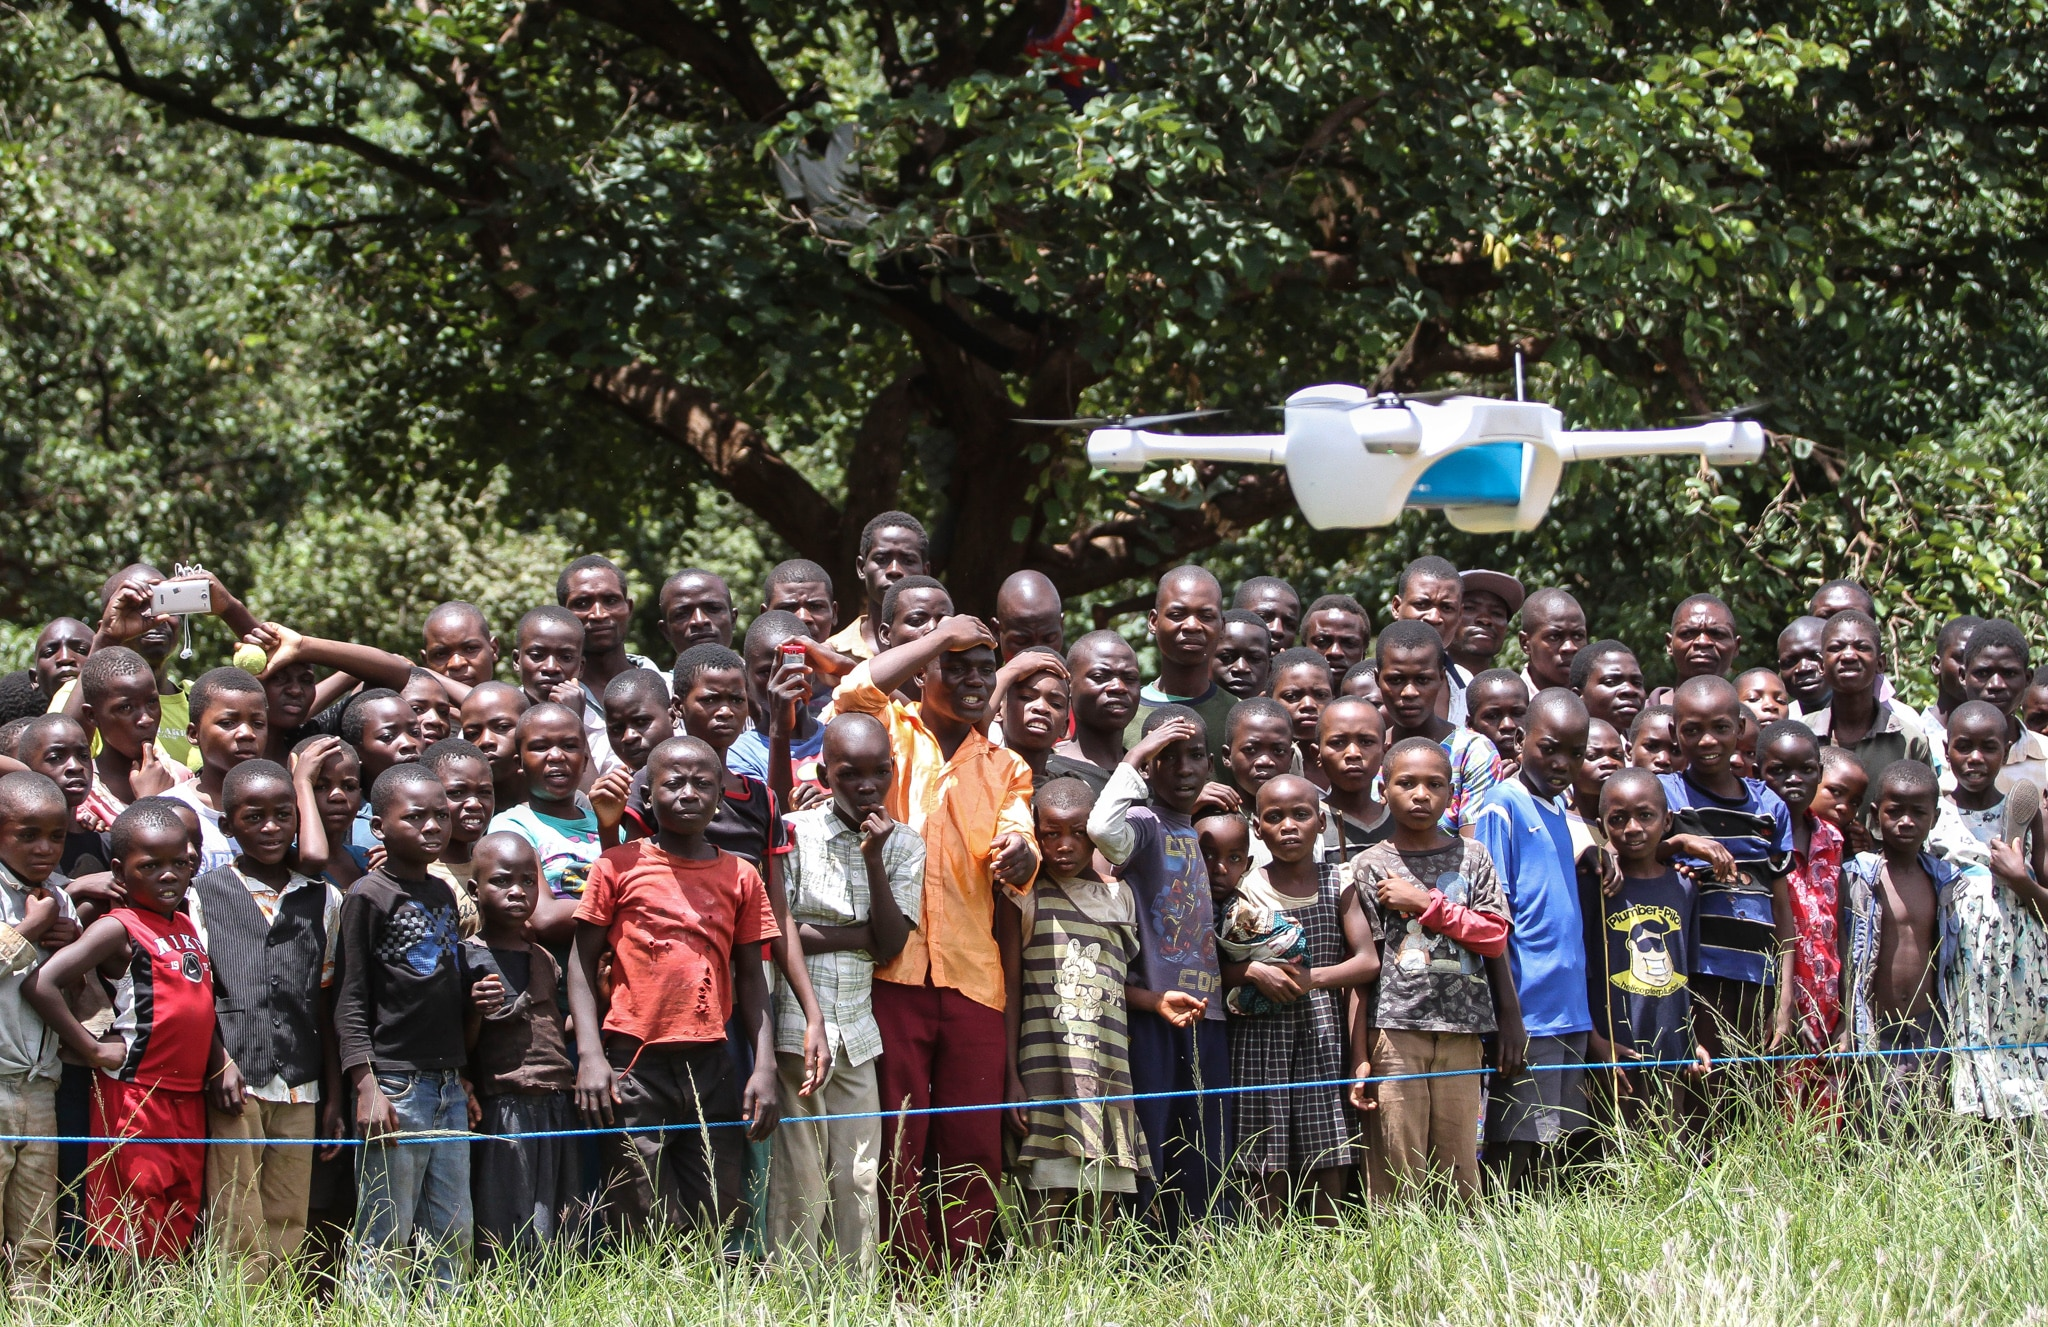 Children watching drone take off (© Bodele/UNICEF)